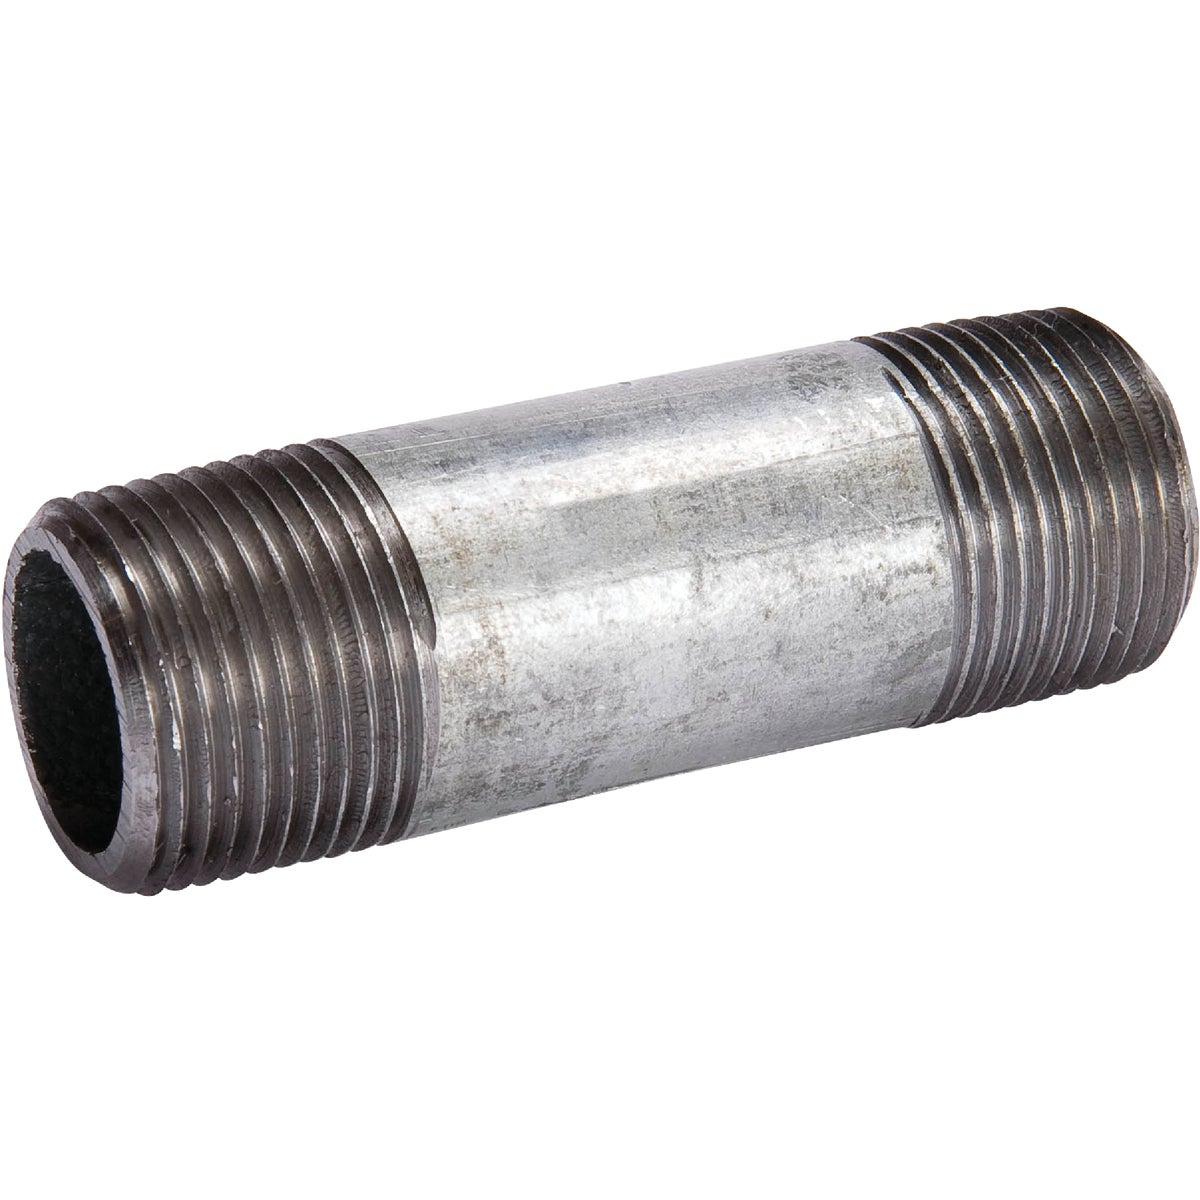 3/4X4-1/2 GALV NIPPLE - 10507 by Southland Pipe Nippl